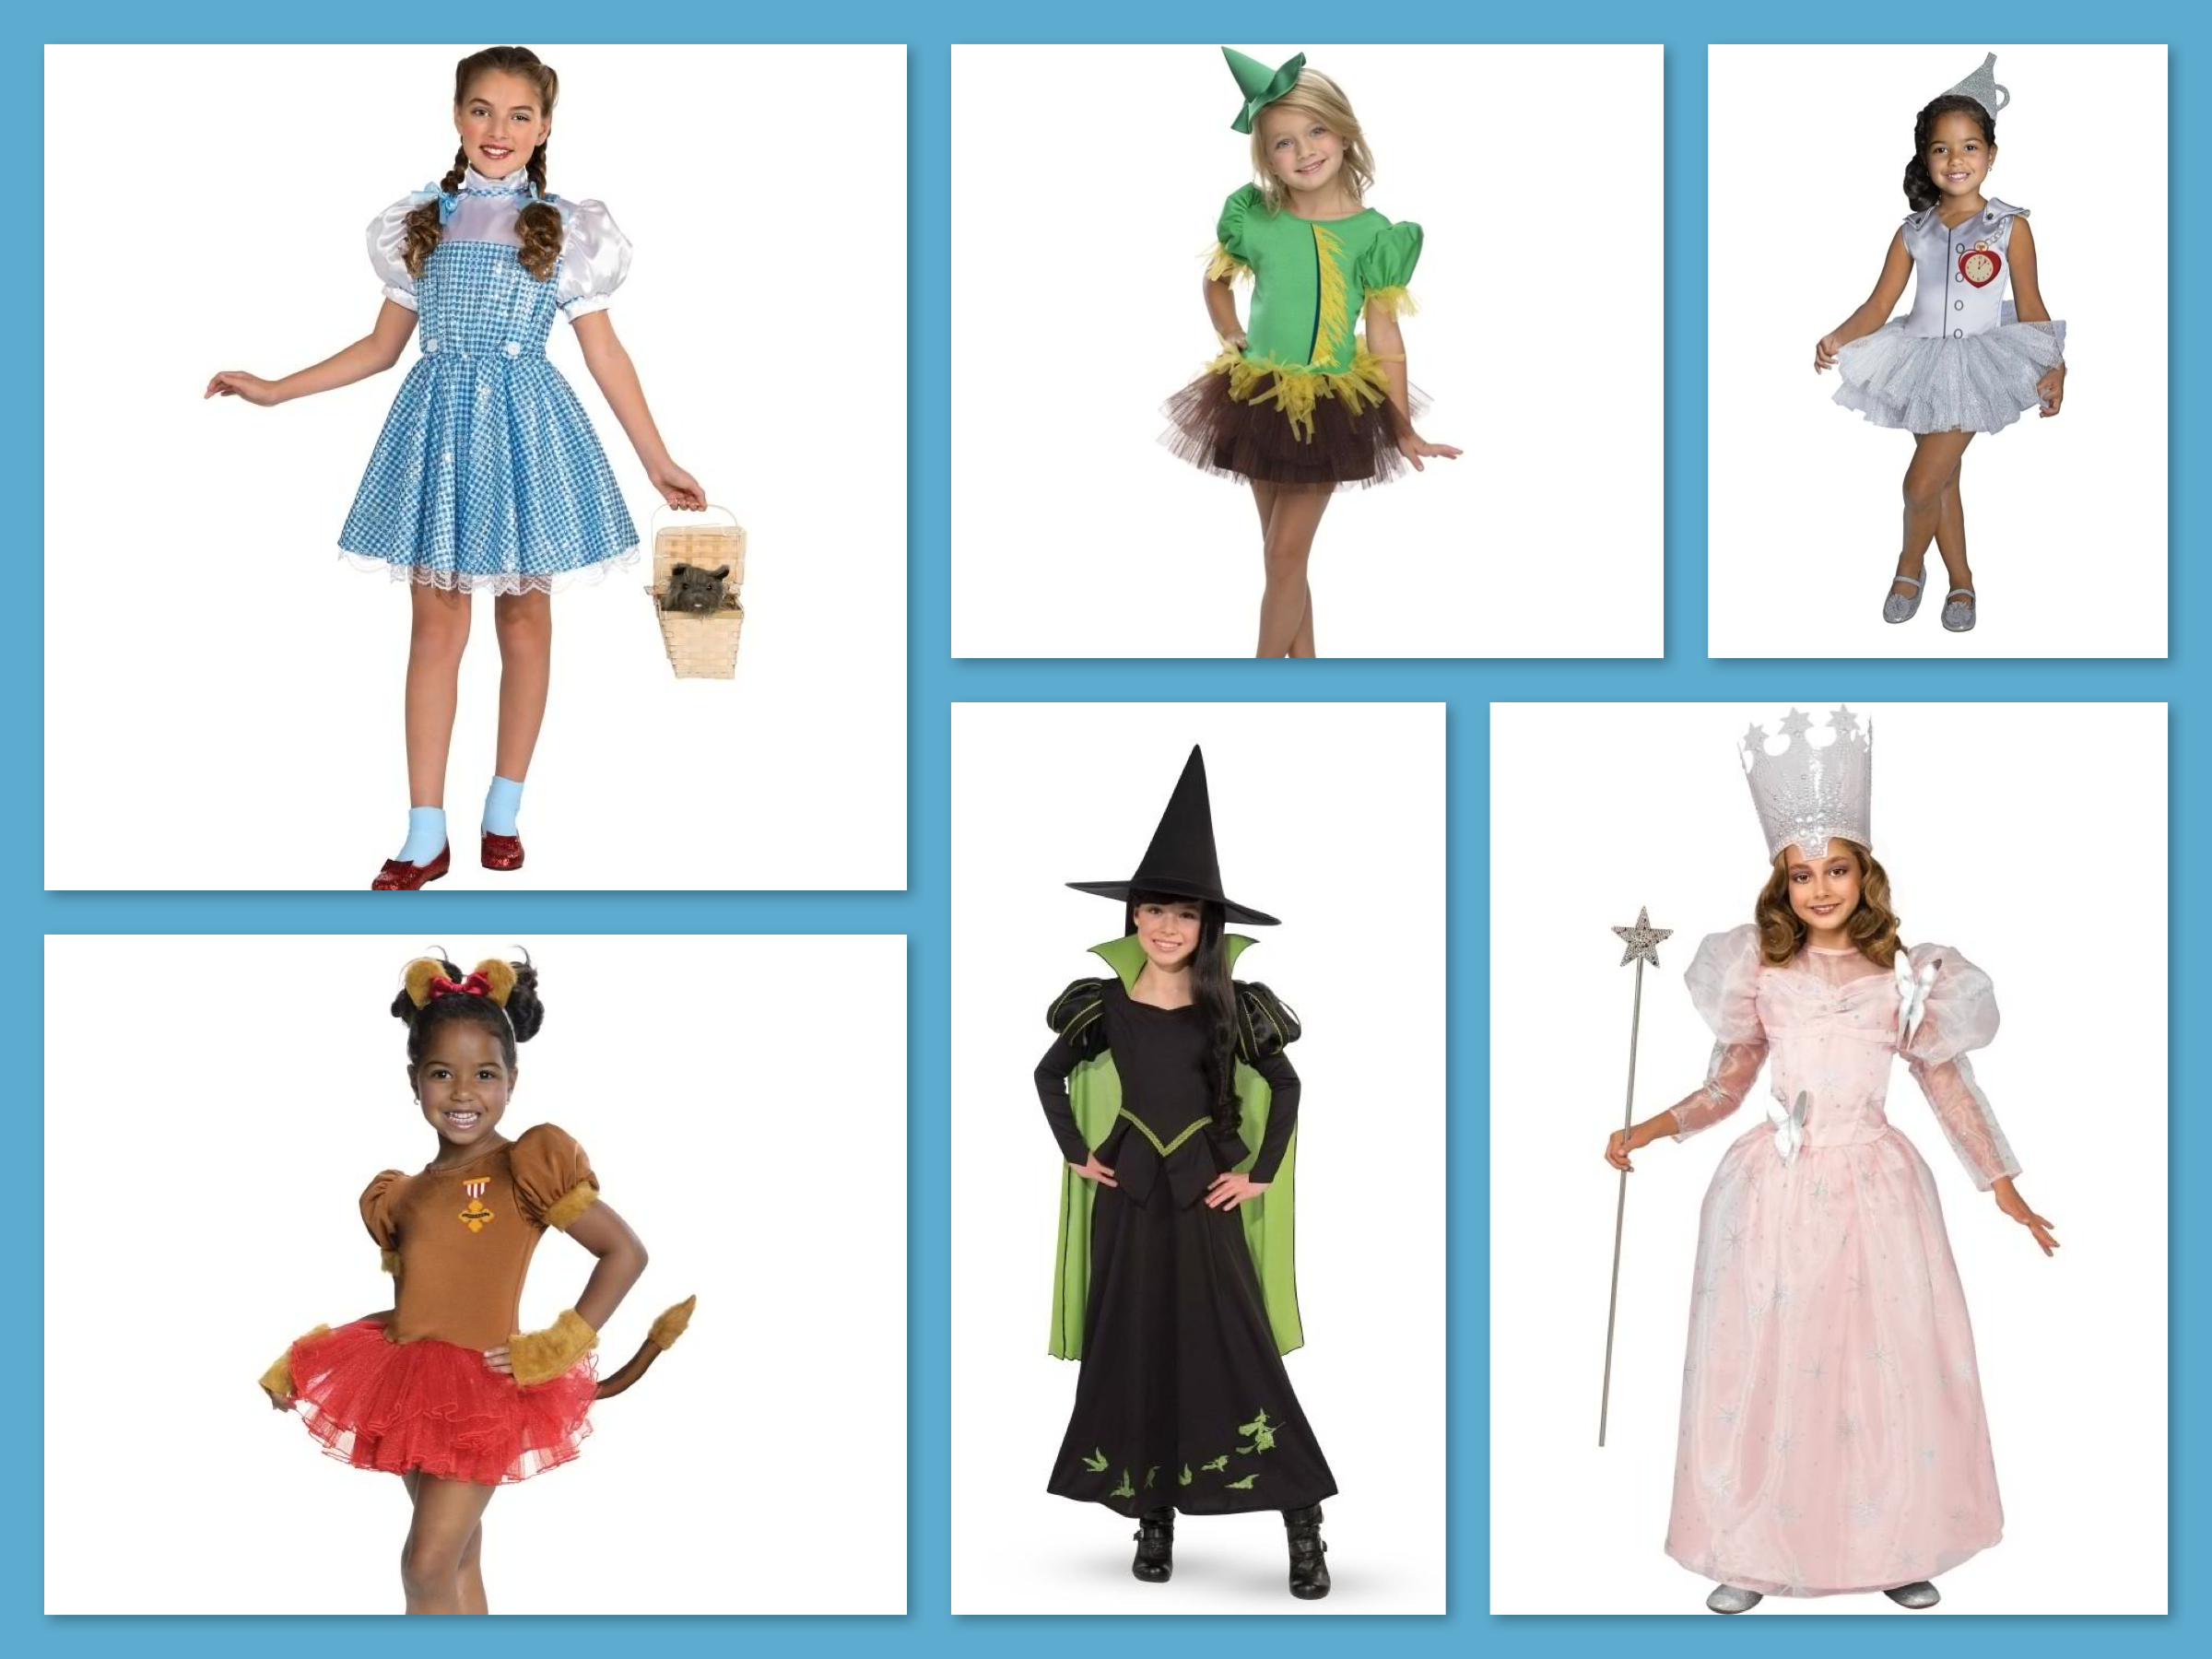 Best Friends Wizard of Oz Costumes, Top Trending Halloween Costumes